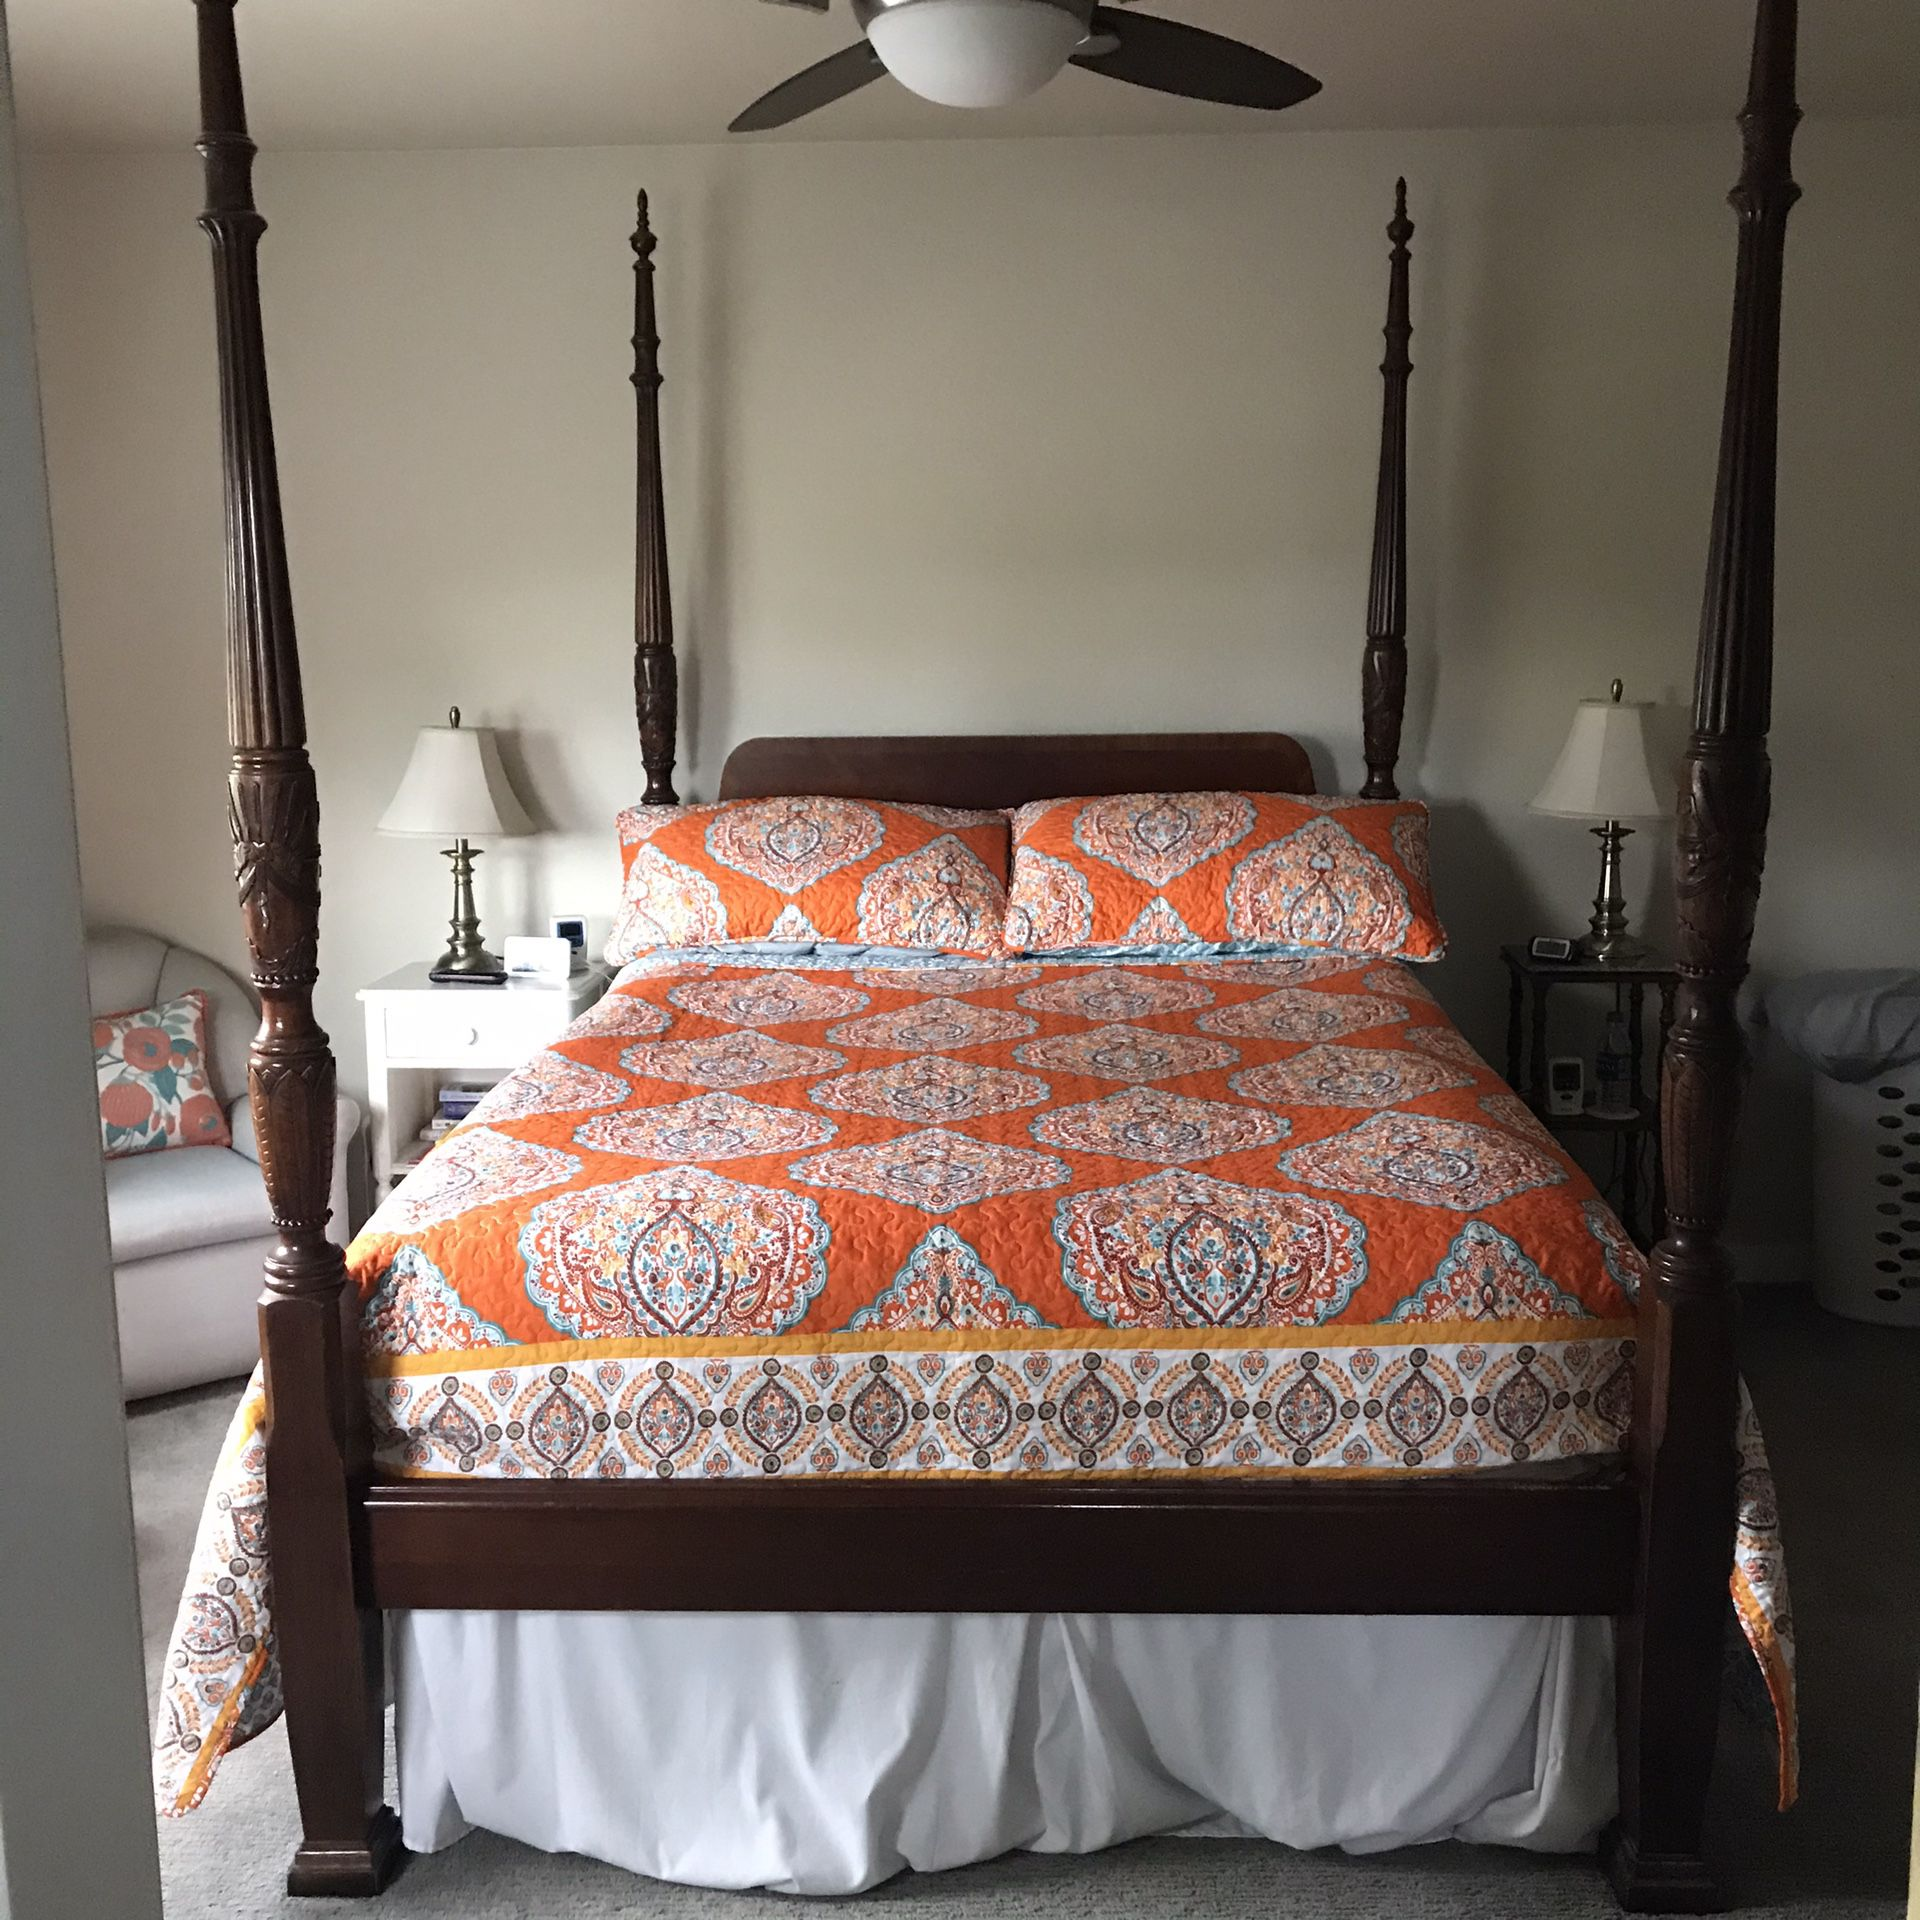 Queen bed frame almost new